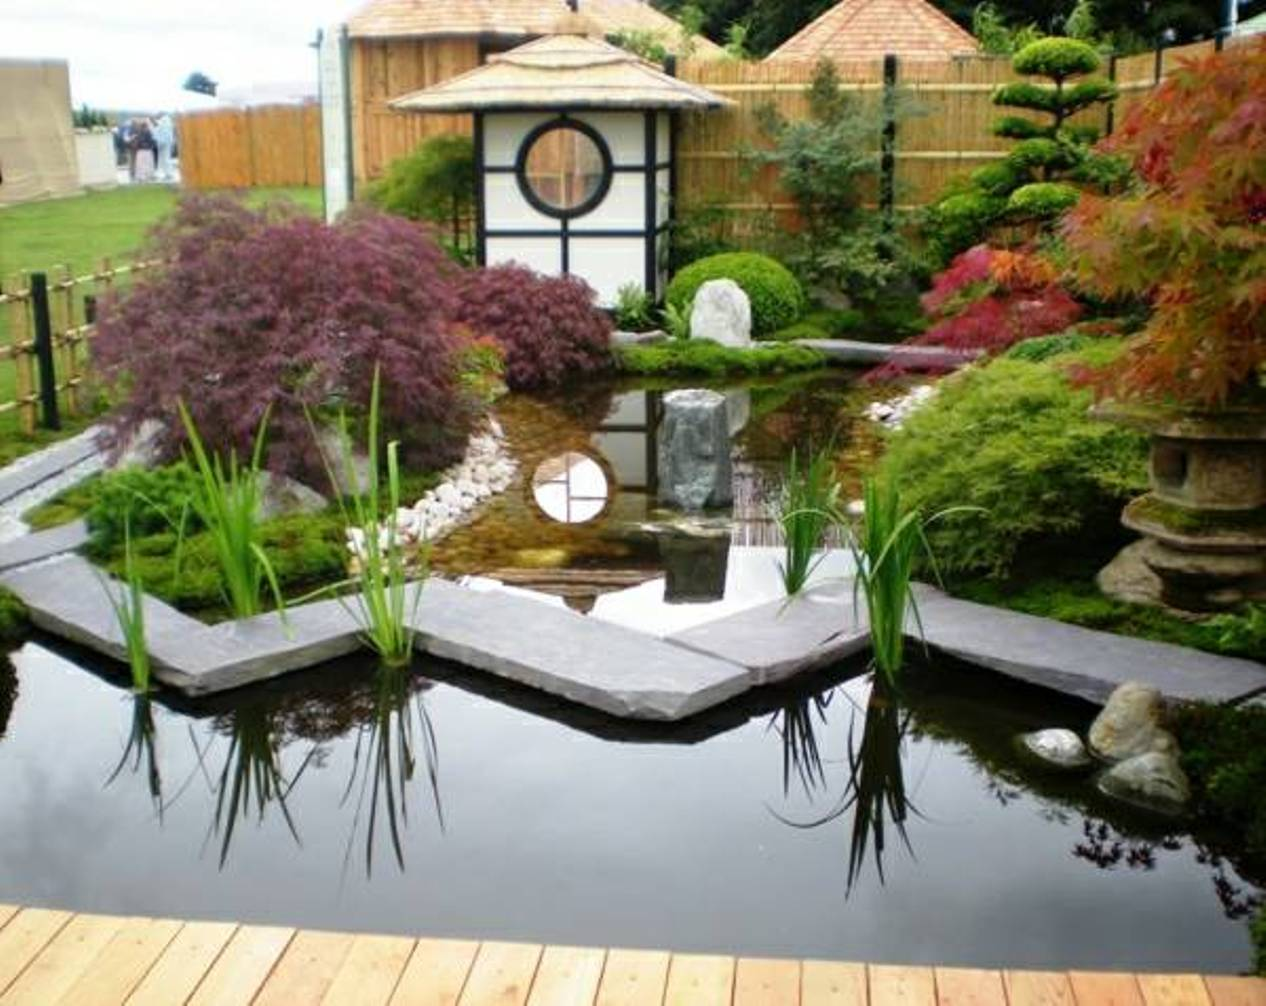 Charmant Modern And Traditional Japanese Inspired Water Gardens, Both Using Rock